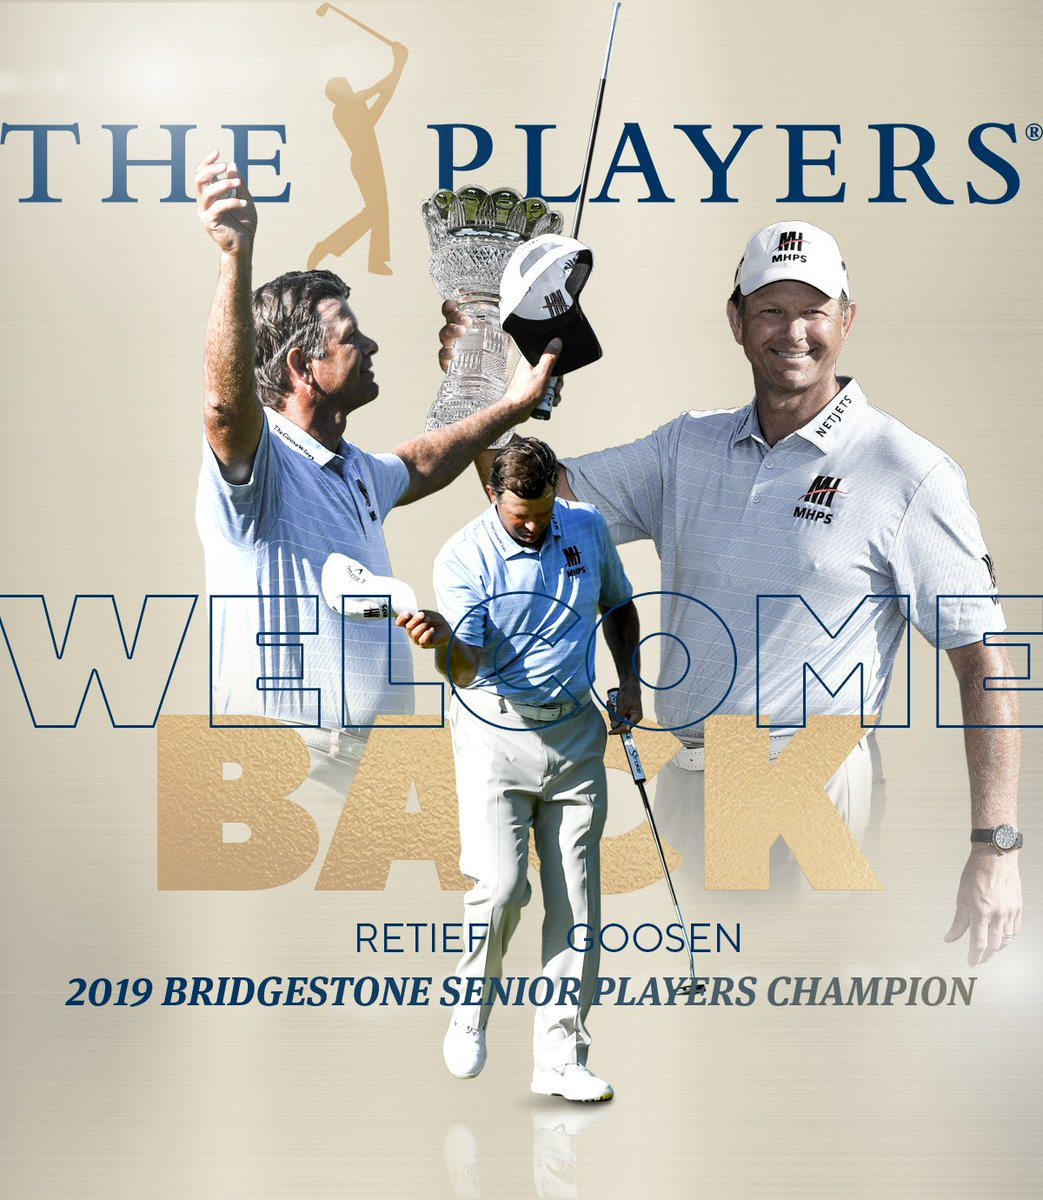 Champions Tour Schedule 2020 THE PLAYERS (@THEPLAYERSChamp)   Twitter